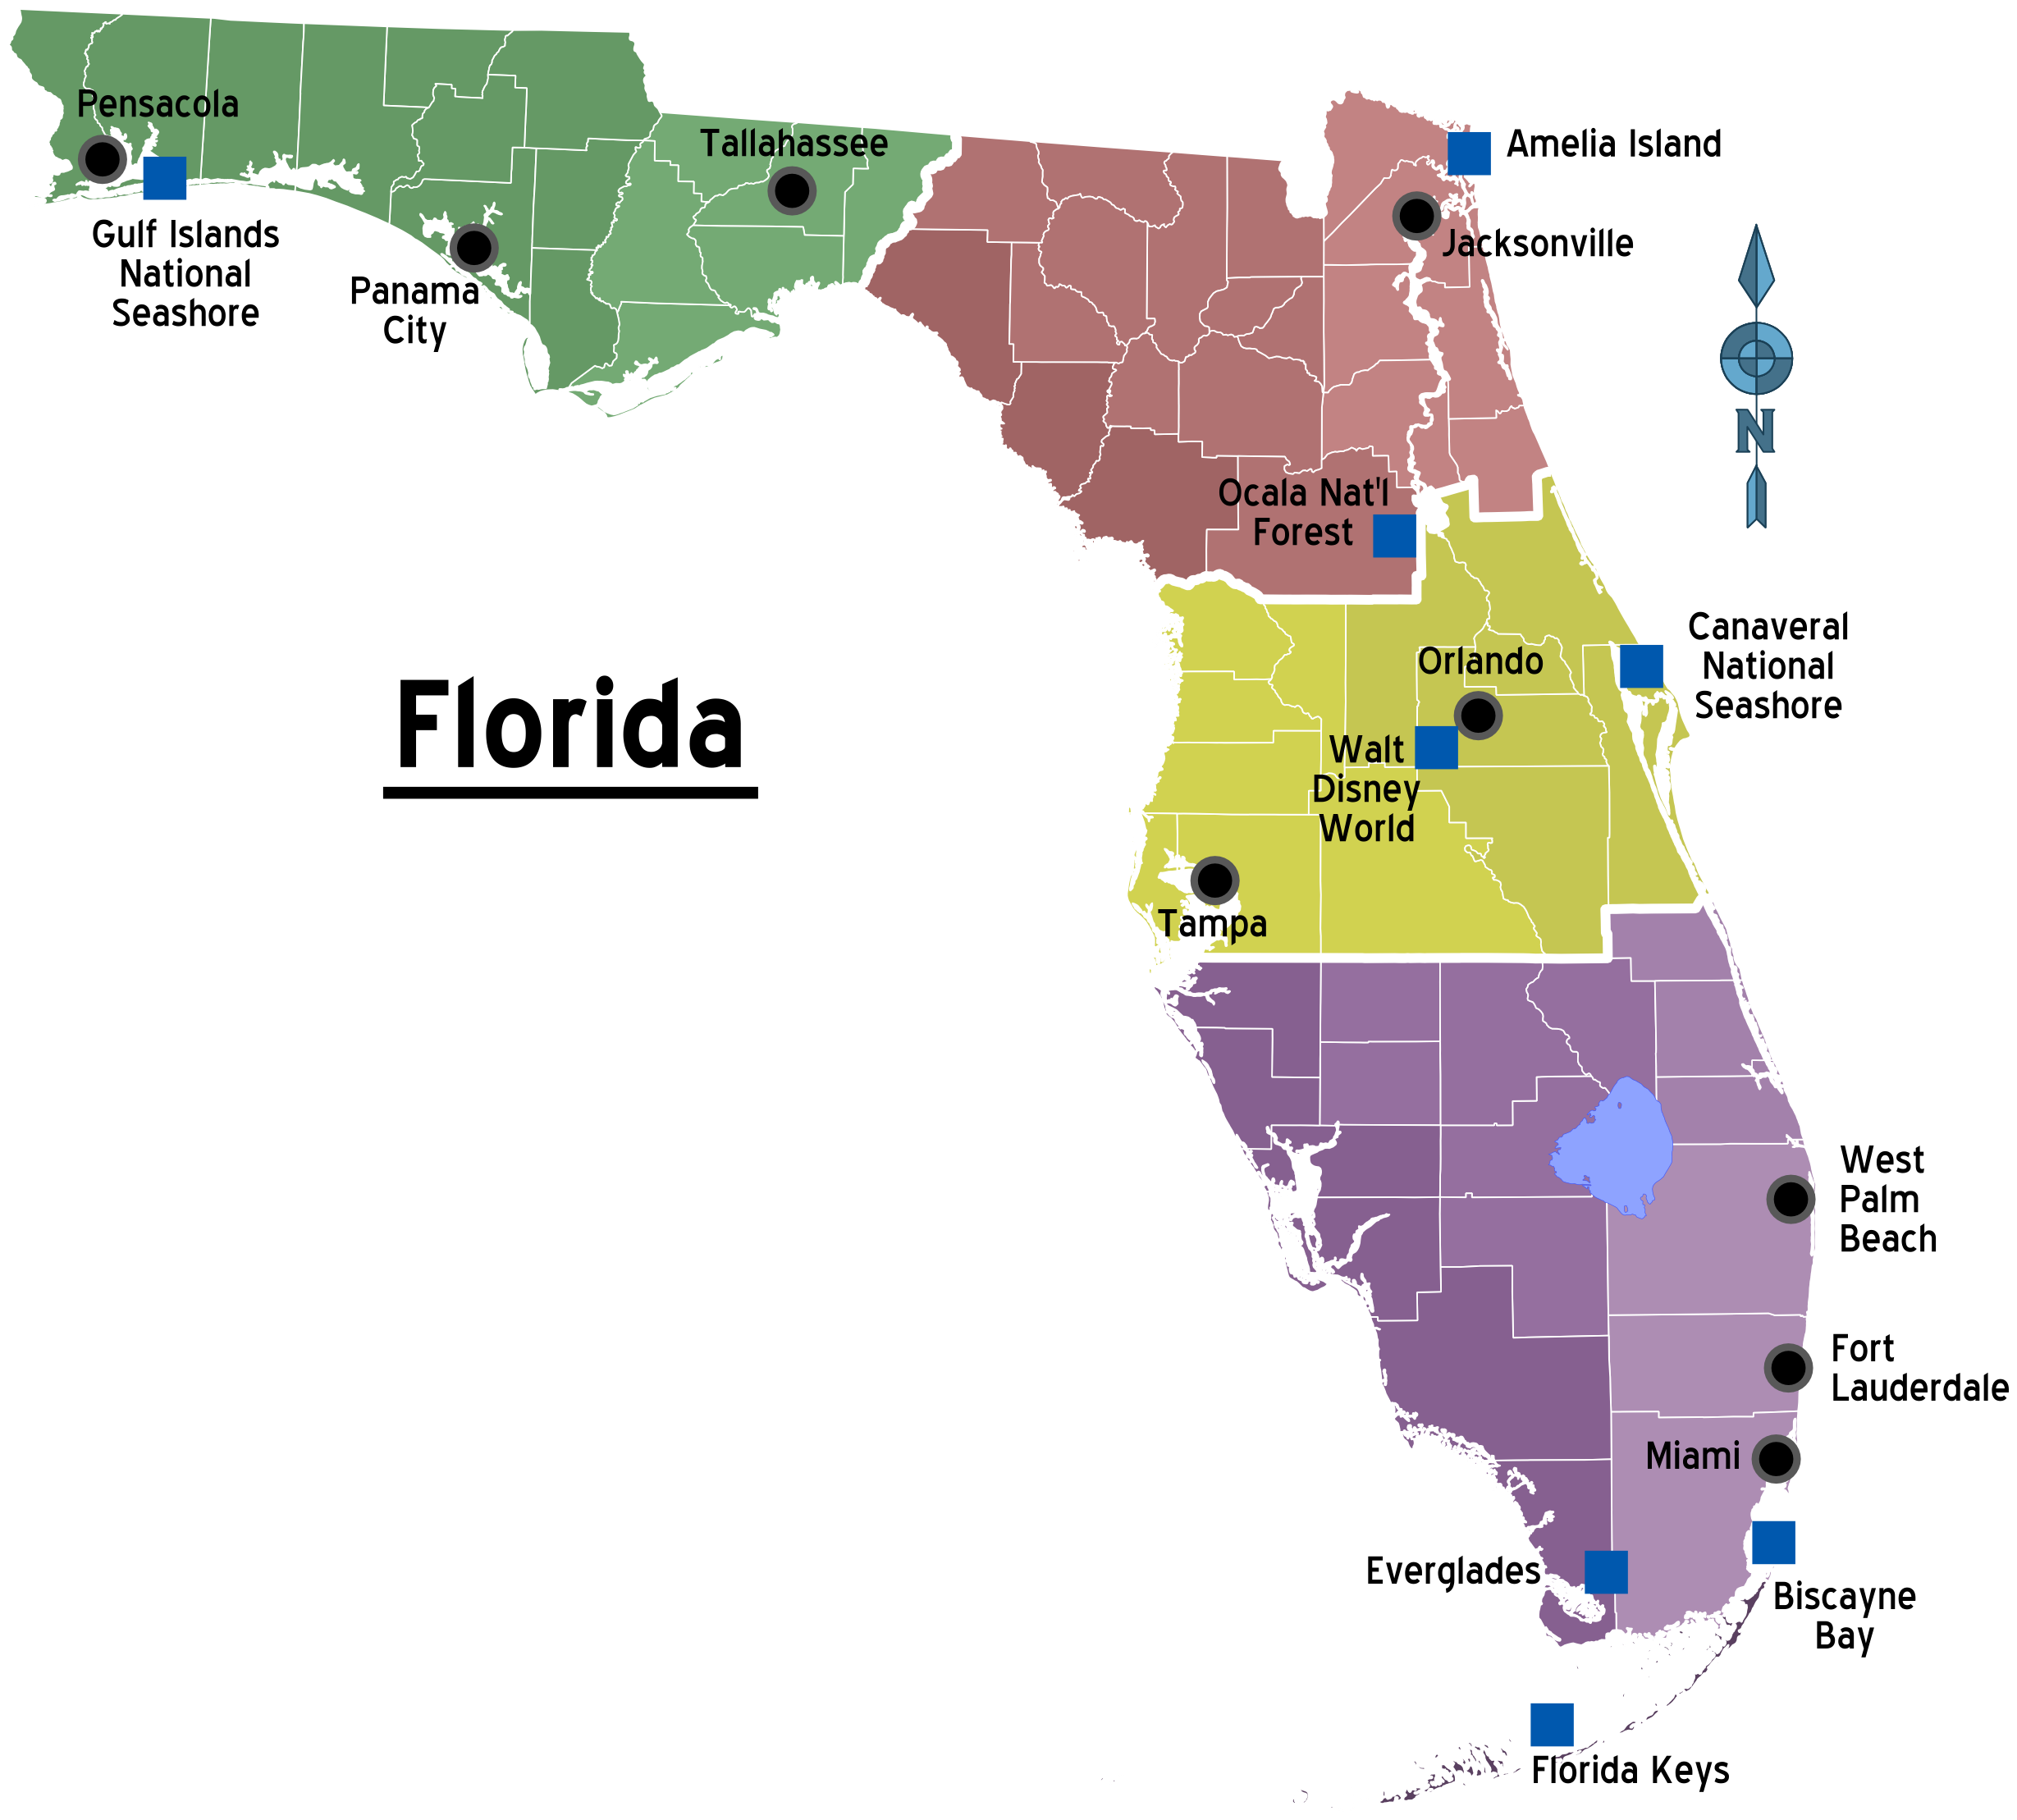 Map Of The Cities In Florida.File Map Of Florida Regions With Cities Png Wikimedia Commons